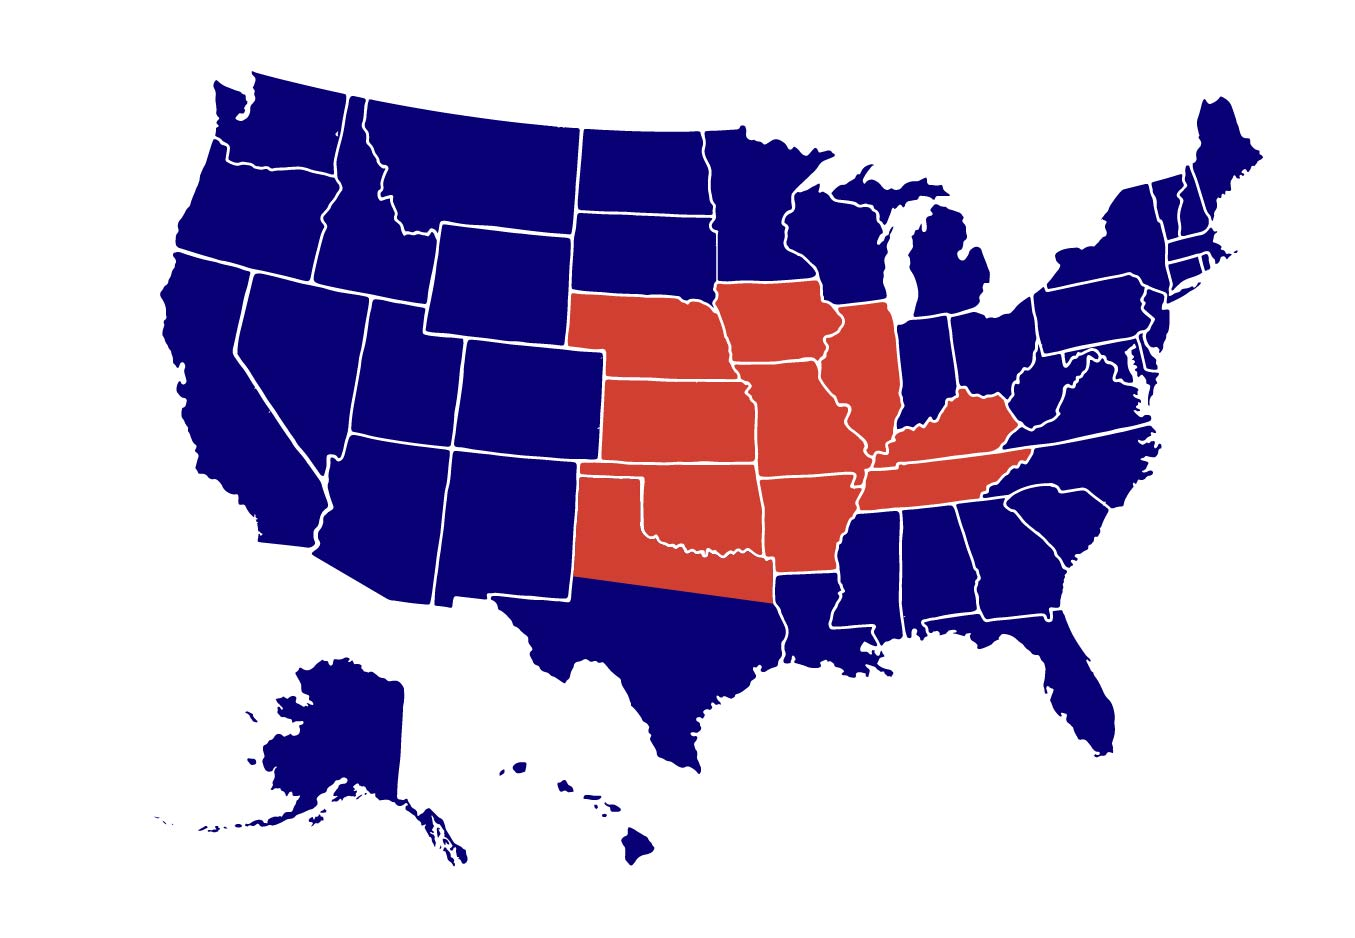 Midwest States that Superior Serves